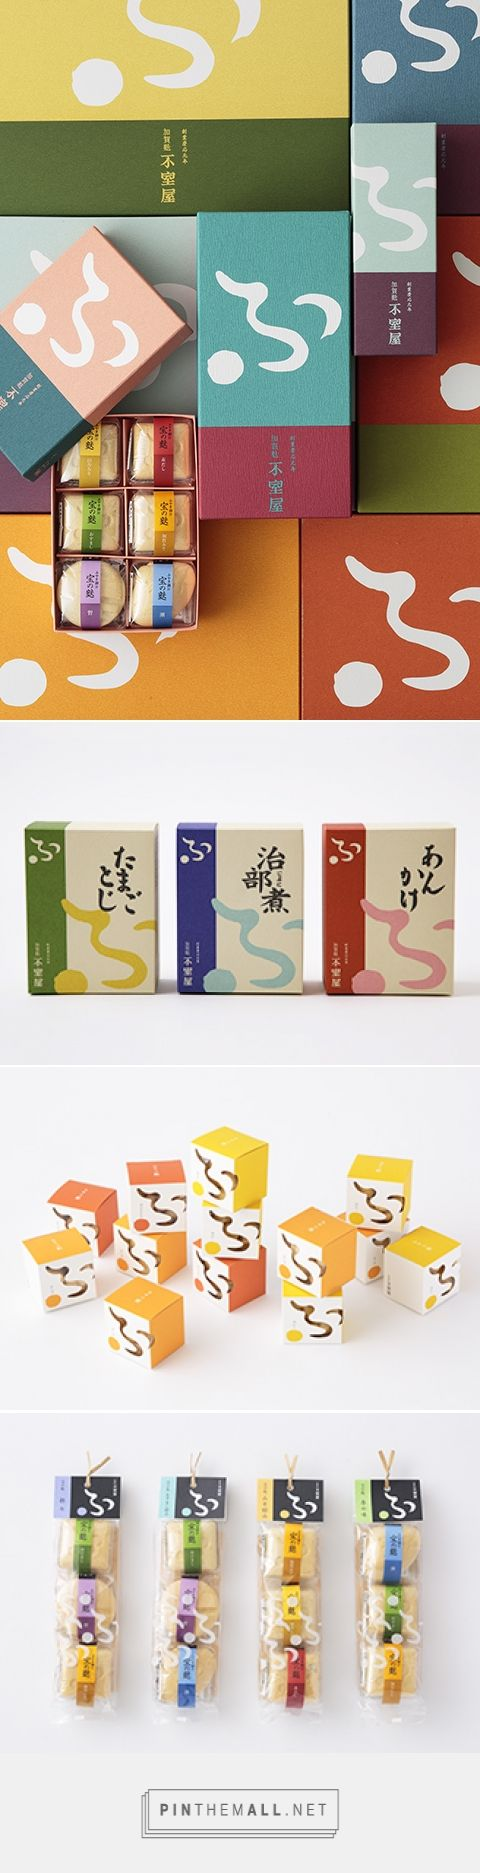 KAGAFU FUMUROYA via AWATSUJI design curated by Packaging Diva PD.  Love this…                                                                                                                                                                                 もっと見る